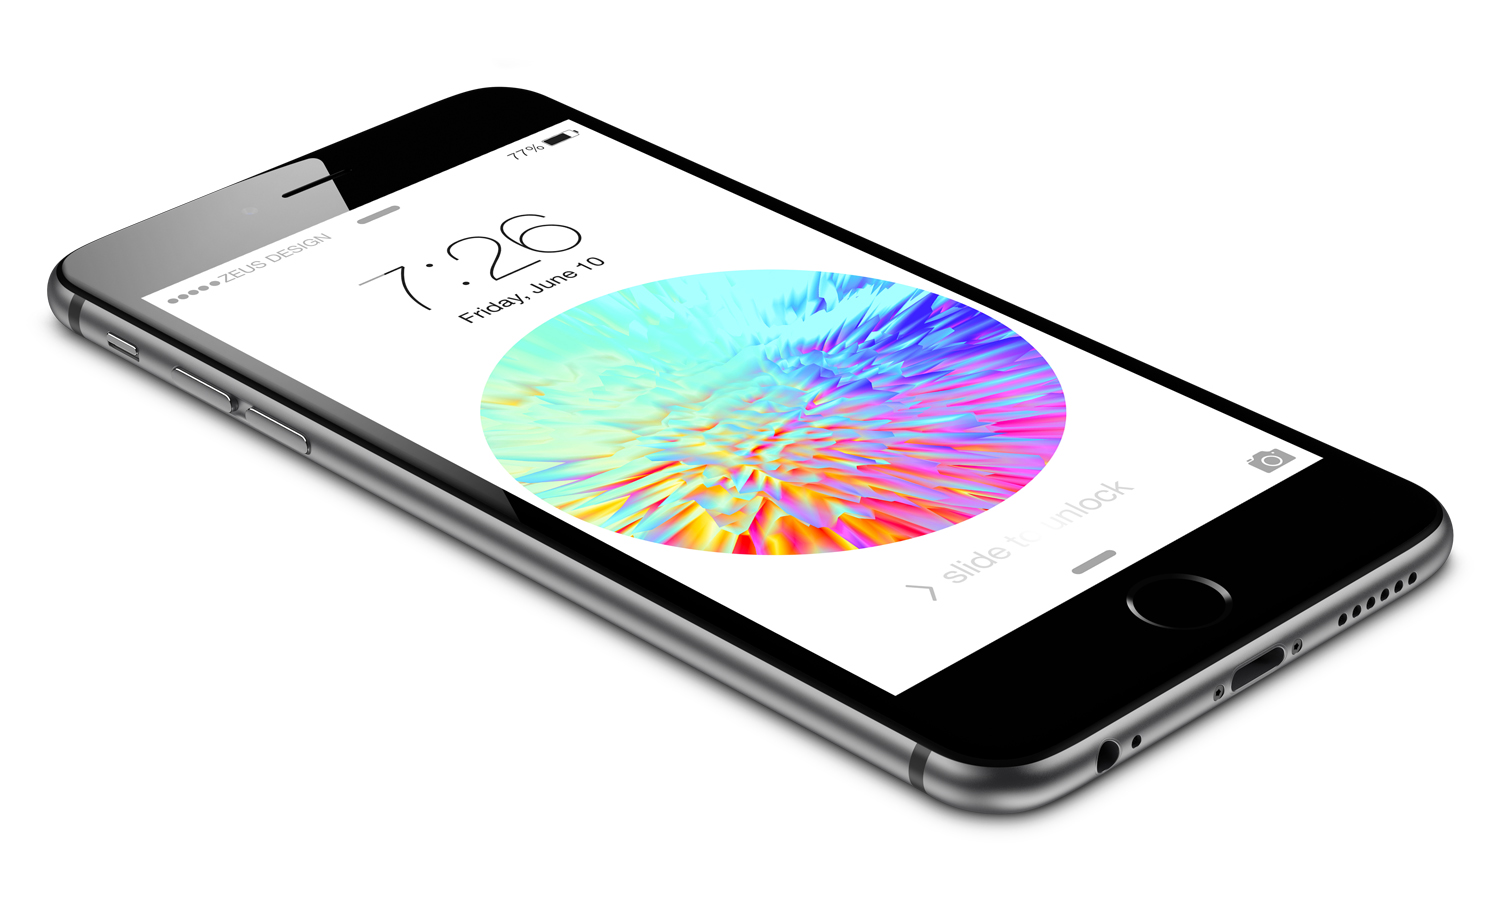 new_old_wave_iphone6.jpg